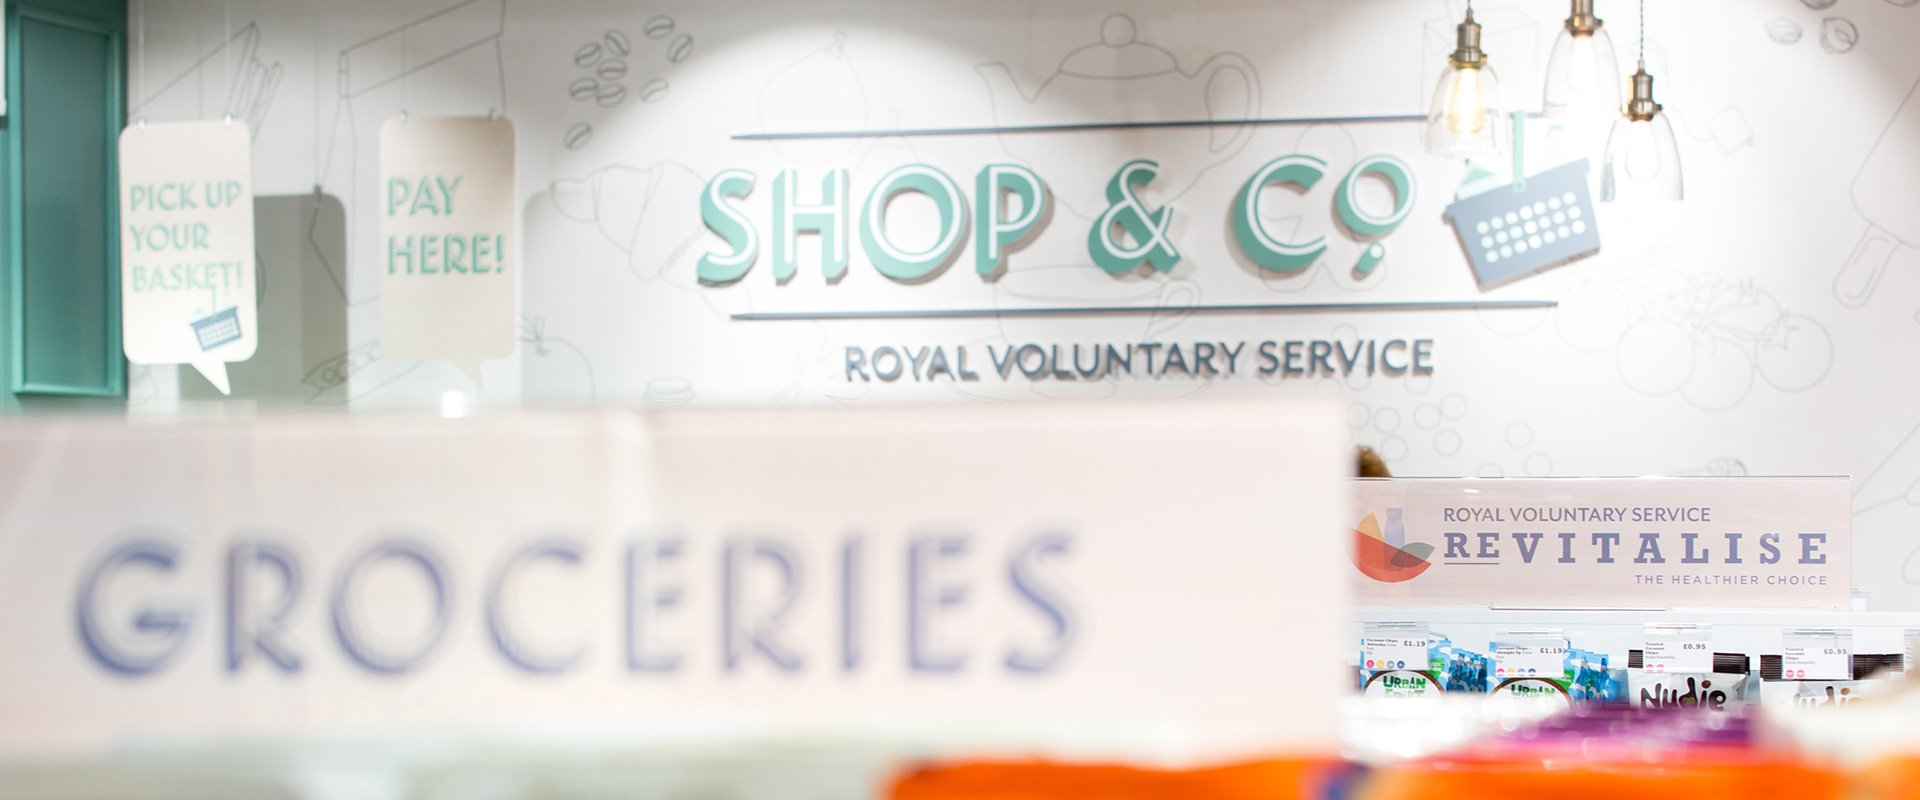 Royal Voluntary Service Shop & co wall logo branding signage